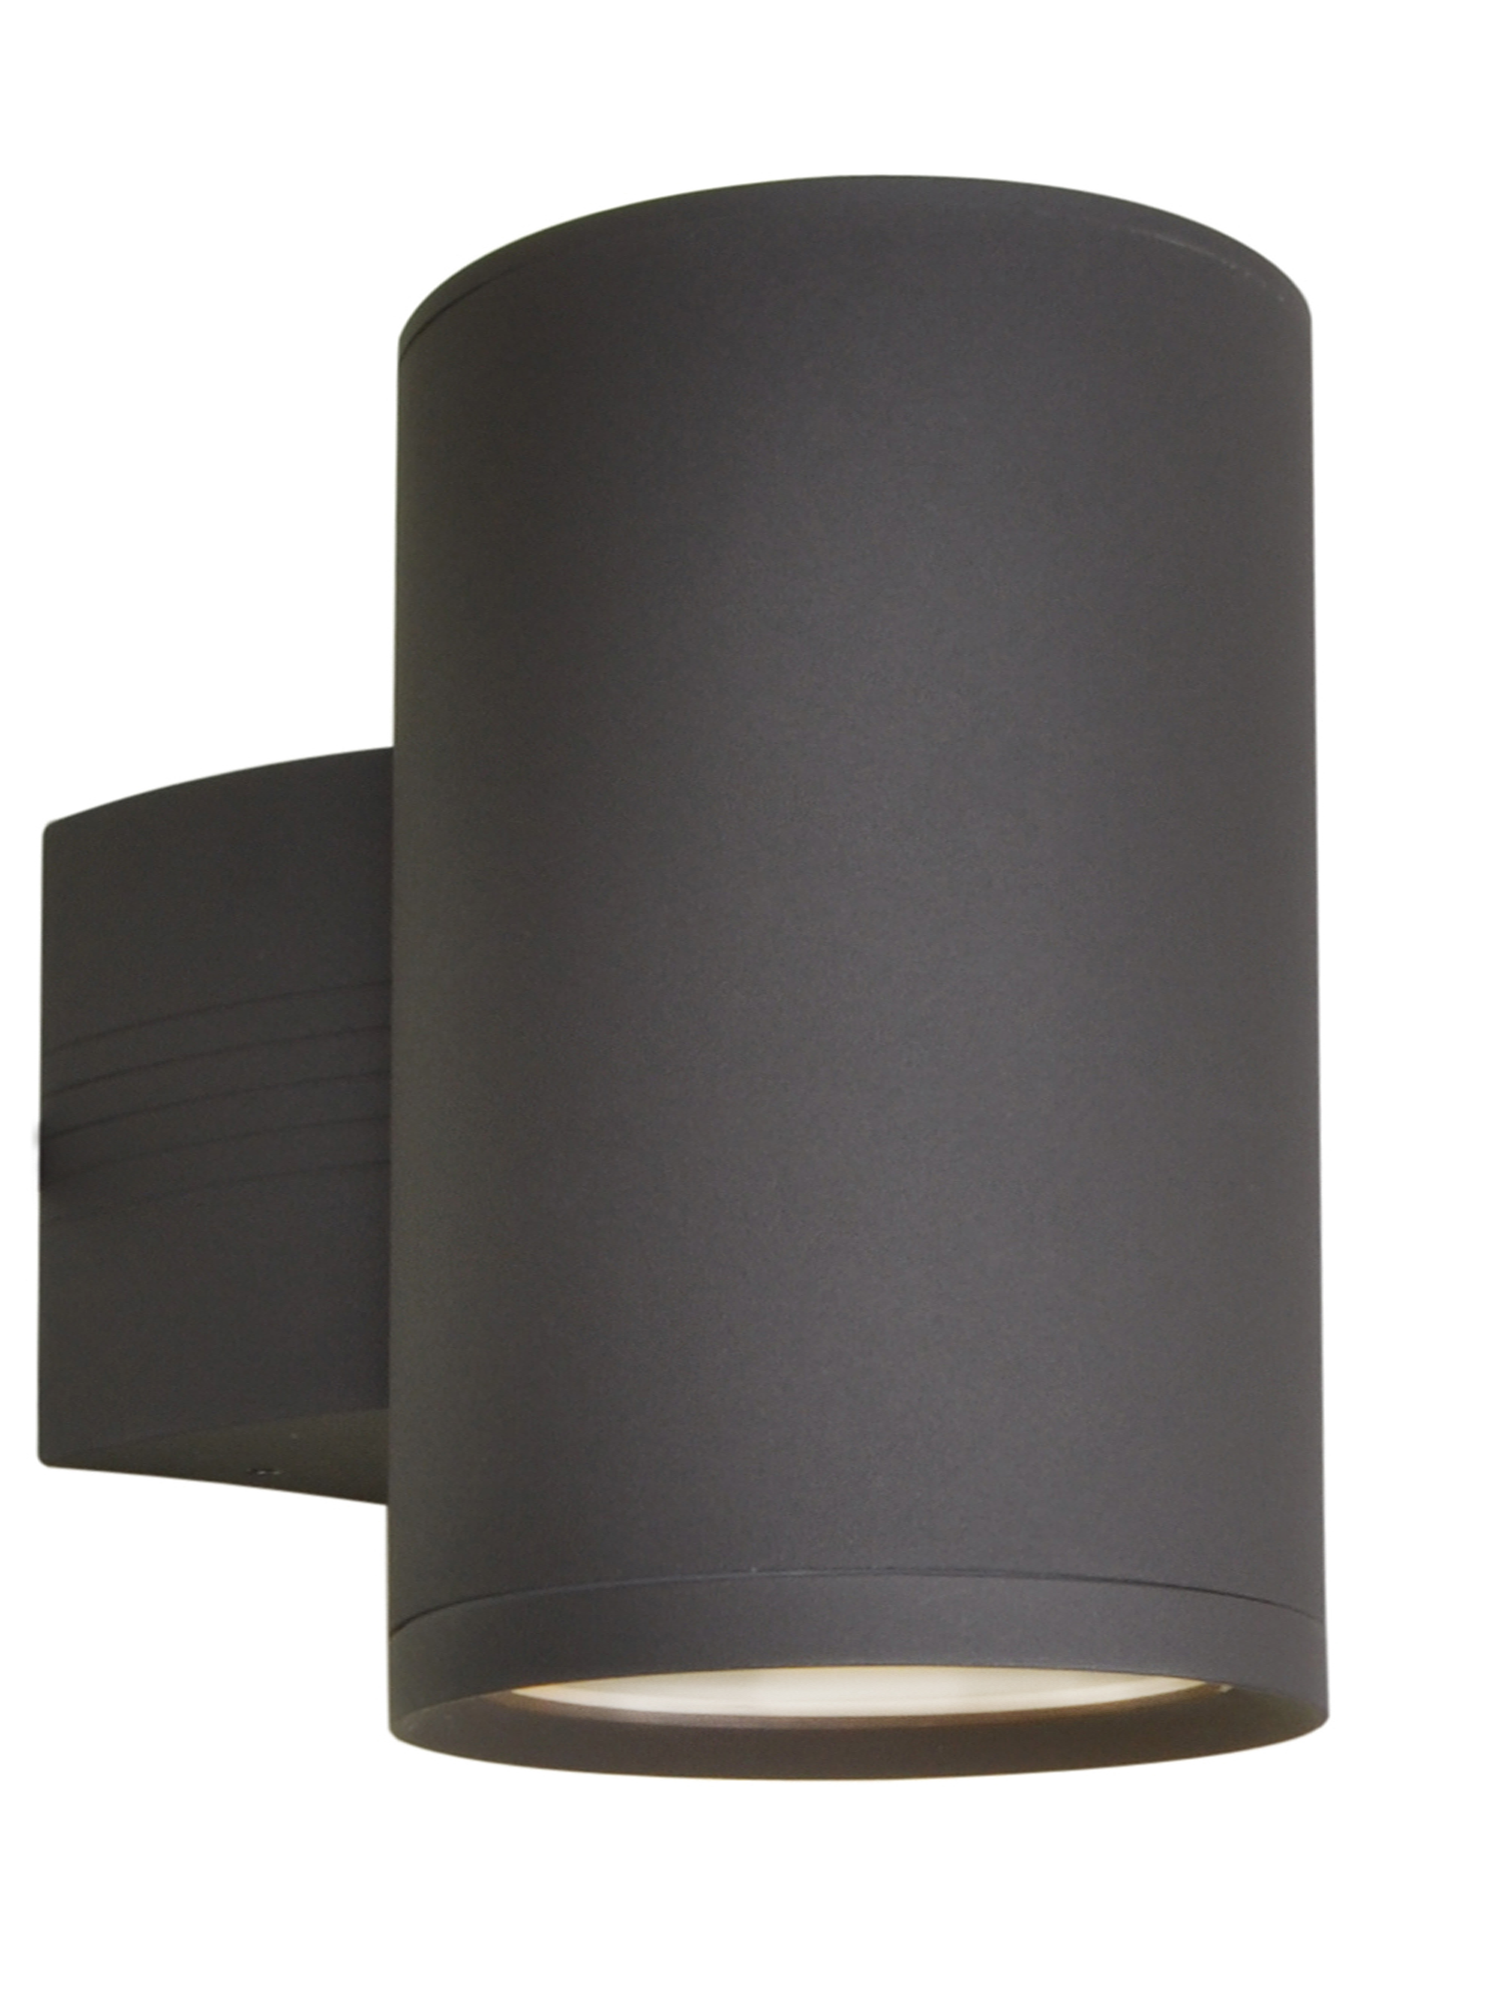 Lightray plain outdoor wall light by maxim lighting